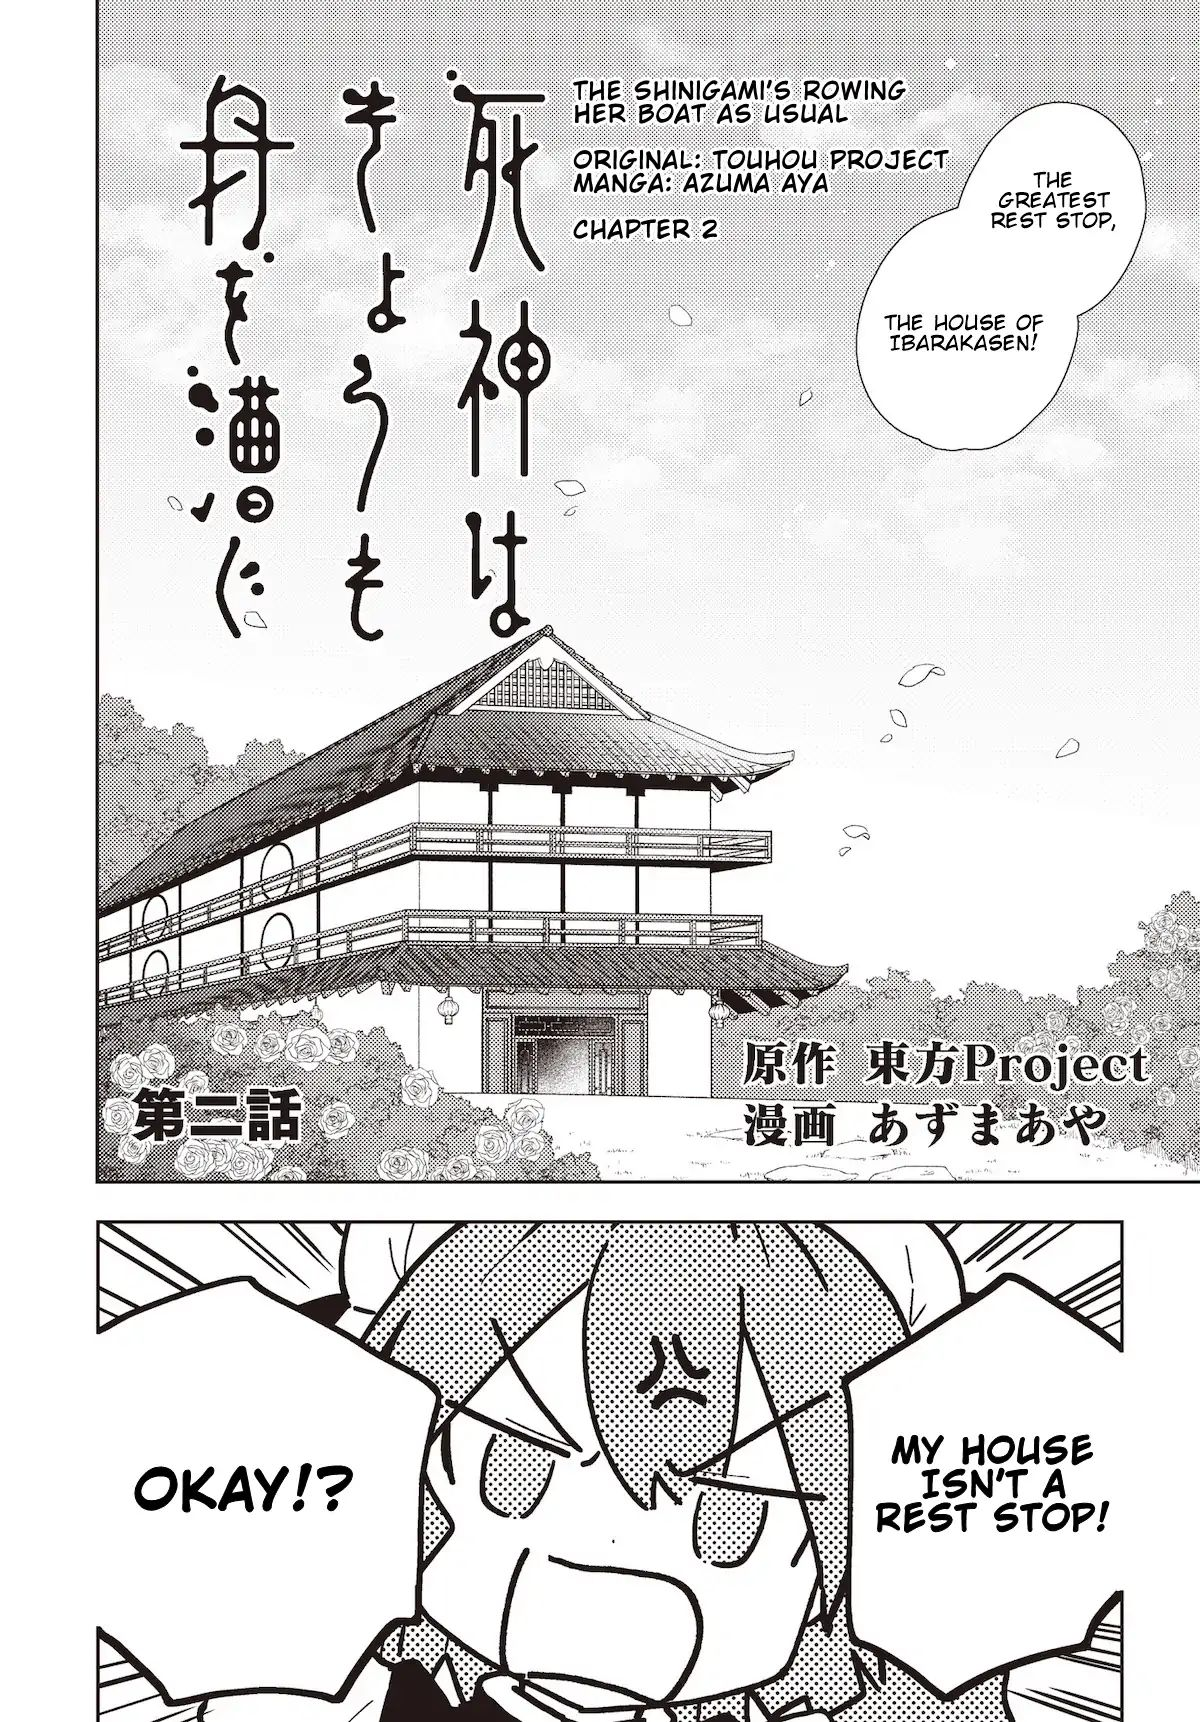 The Shinigami's Rowing Her Boat as Usual - Touhou - chapter 2 - #2